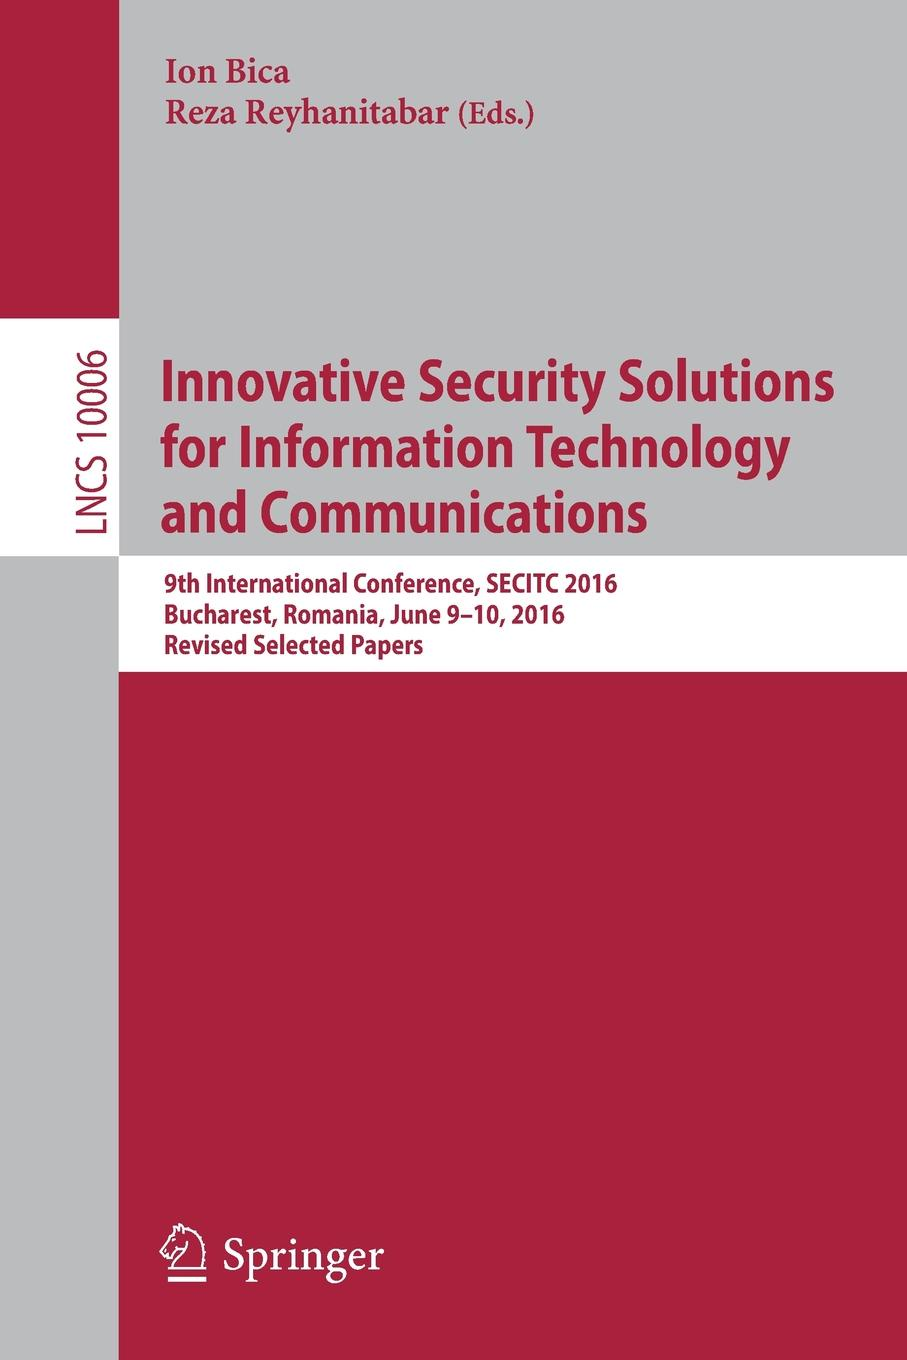 Innovative Security Solutions for Information Technology and Communications. 9th International Conference, SECITC 2016, Bucharest, Romania, June 9-10, 2016, Revised Selected Papers